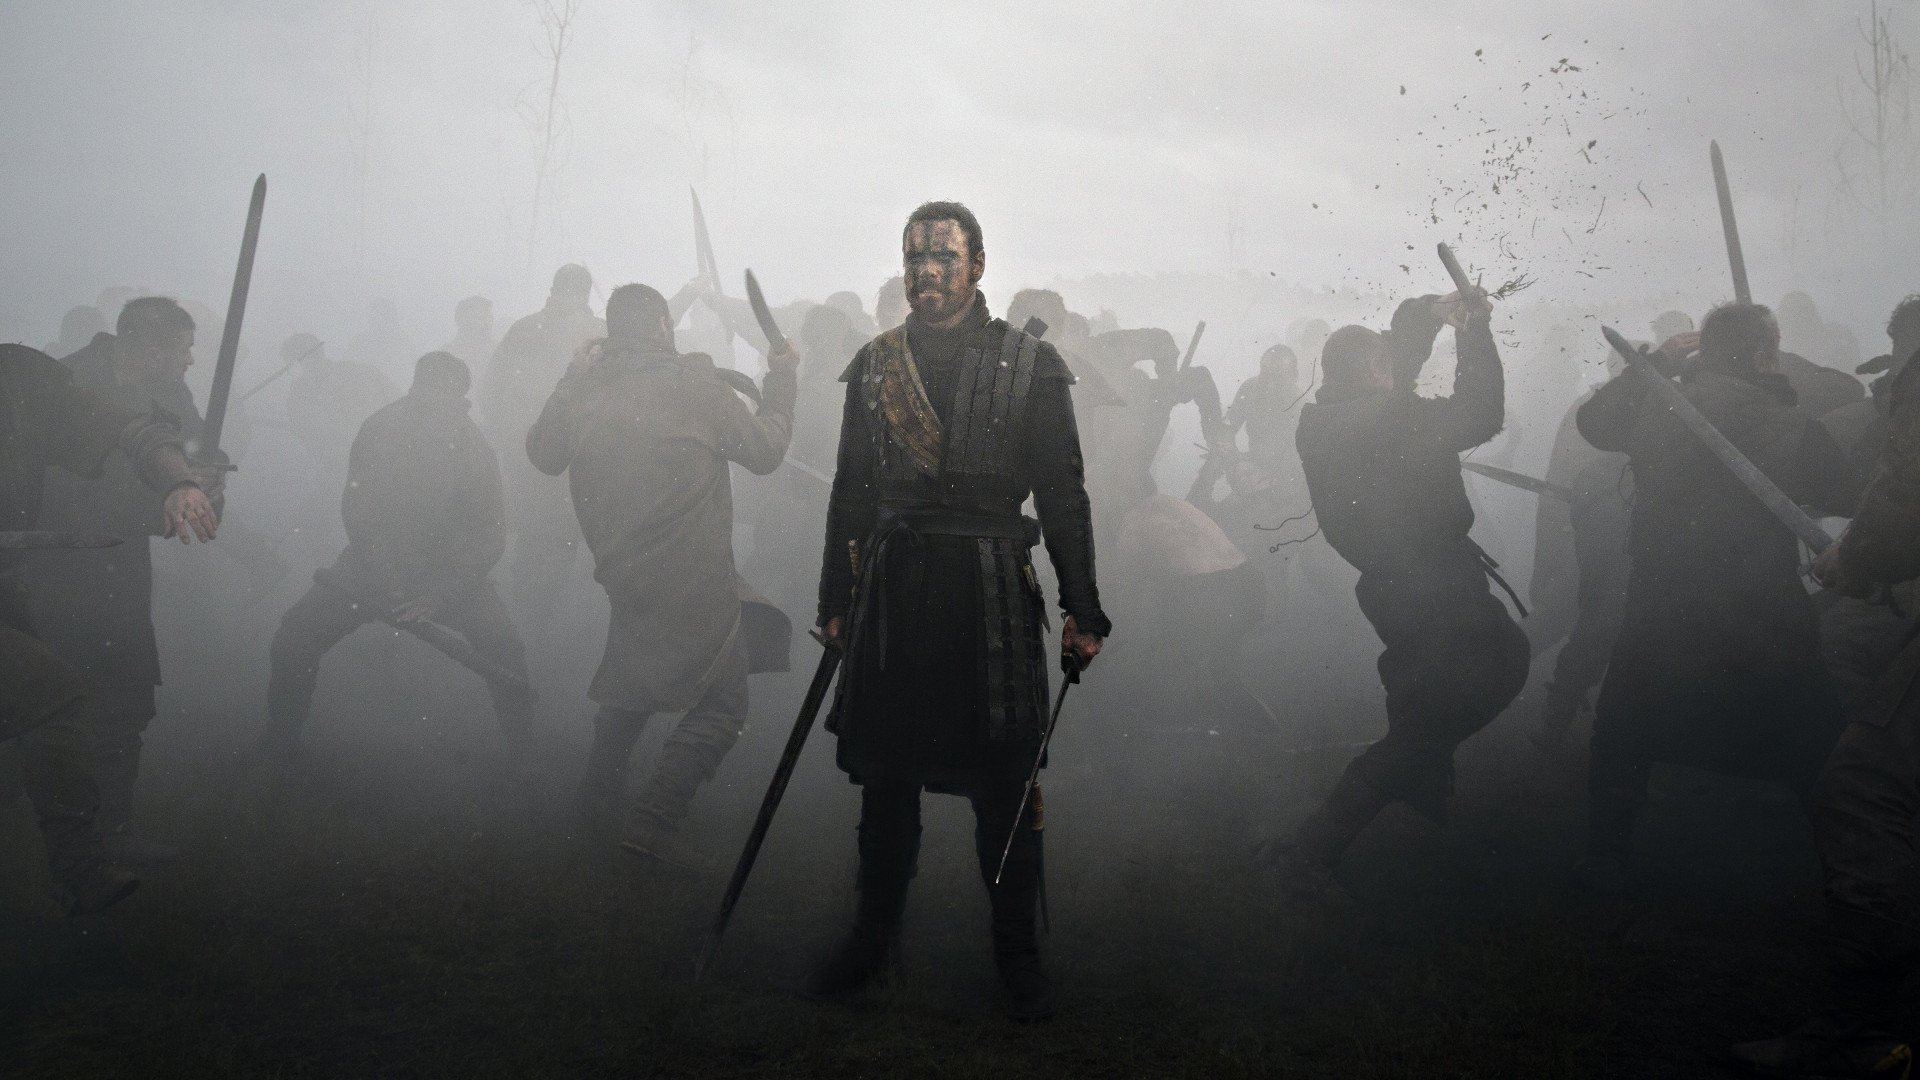 Michael Fassbender plays the over-ambitious Scottish lord in the latest 'Macbeth'